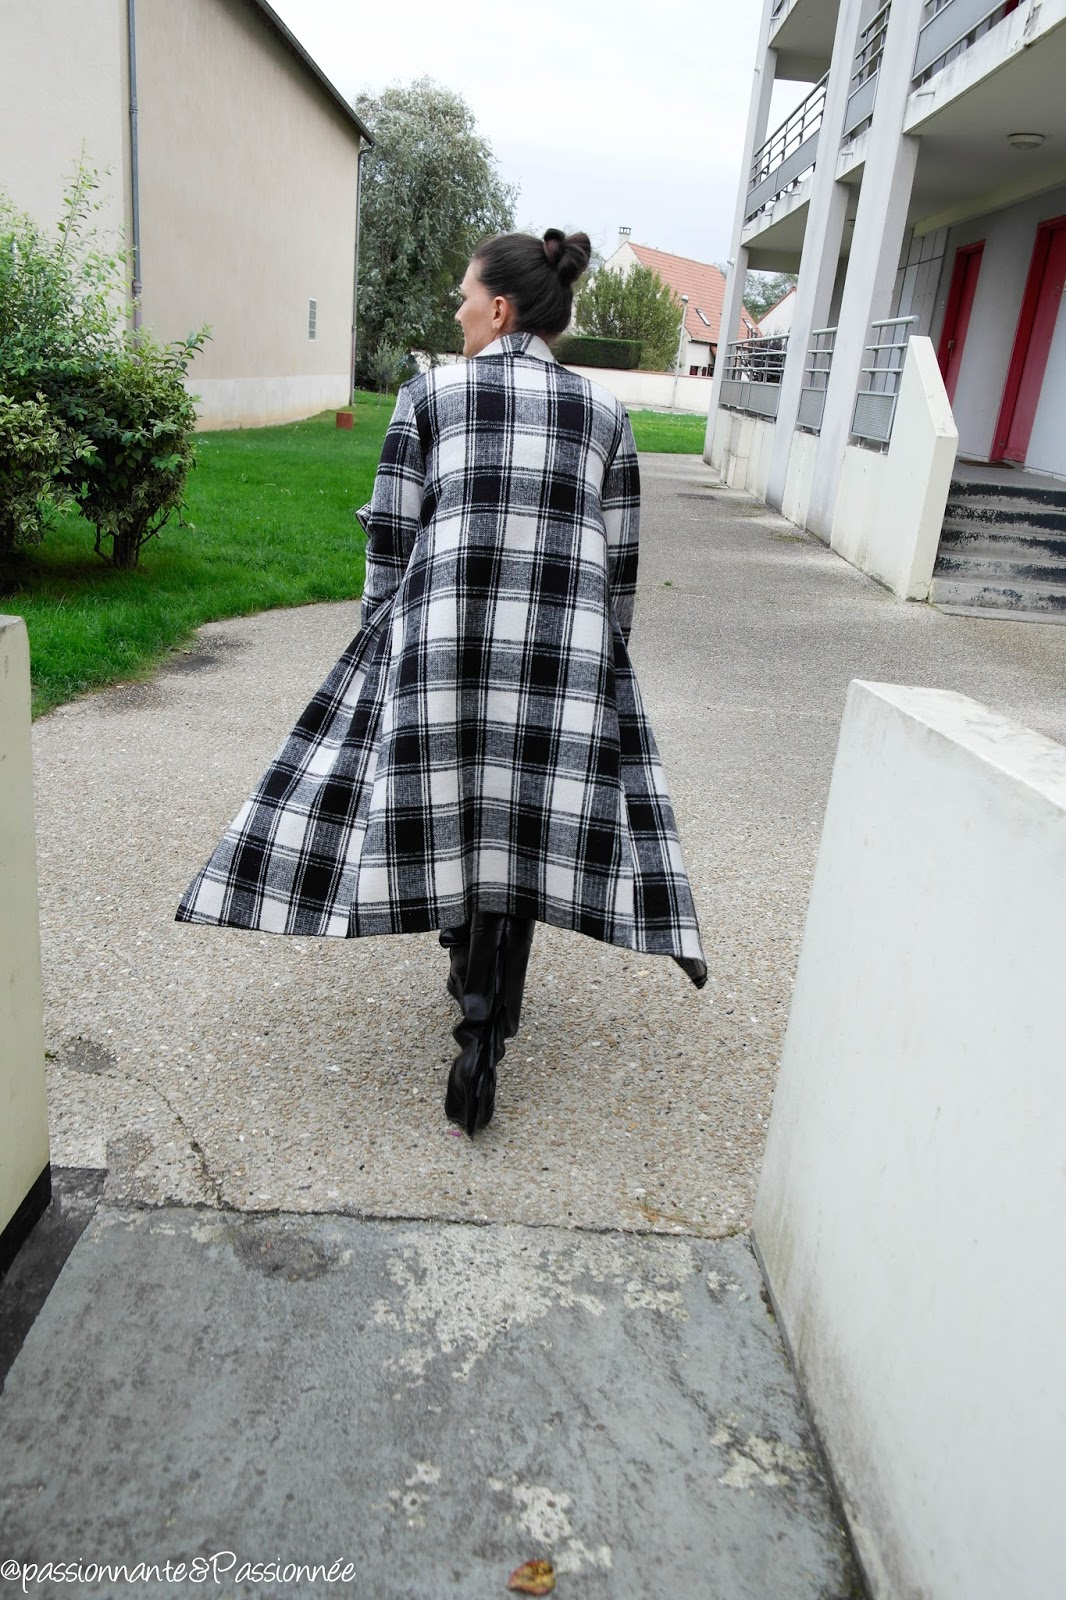 Porter le manteau long